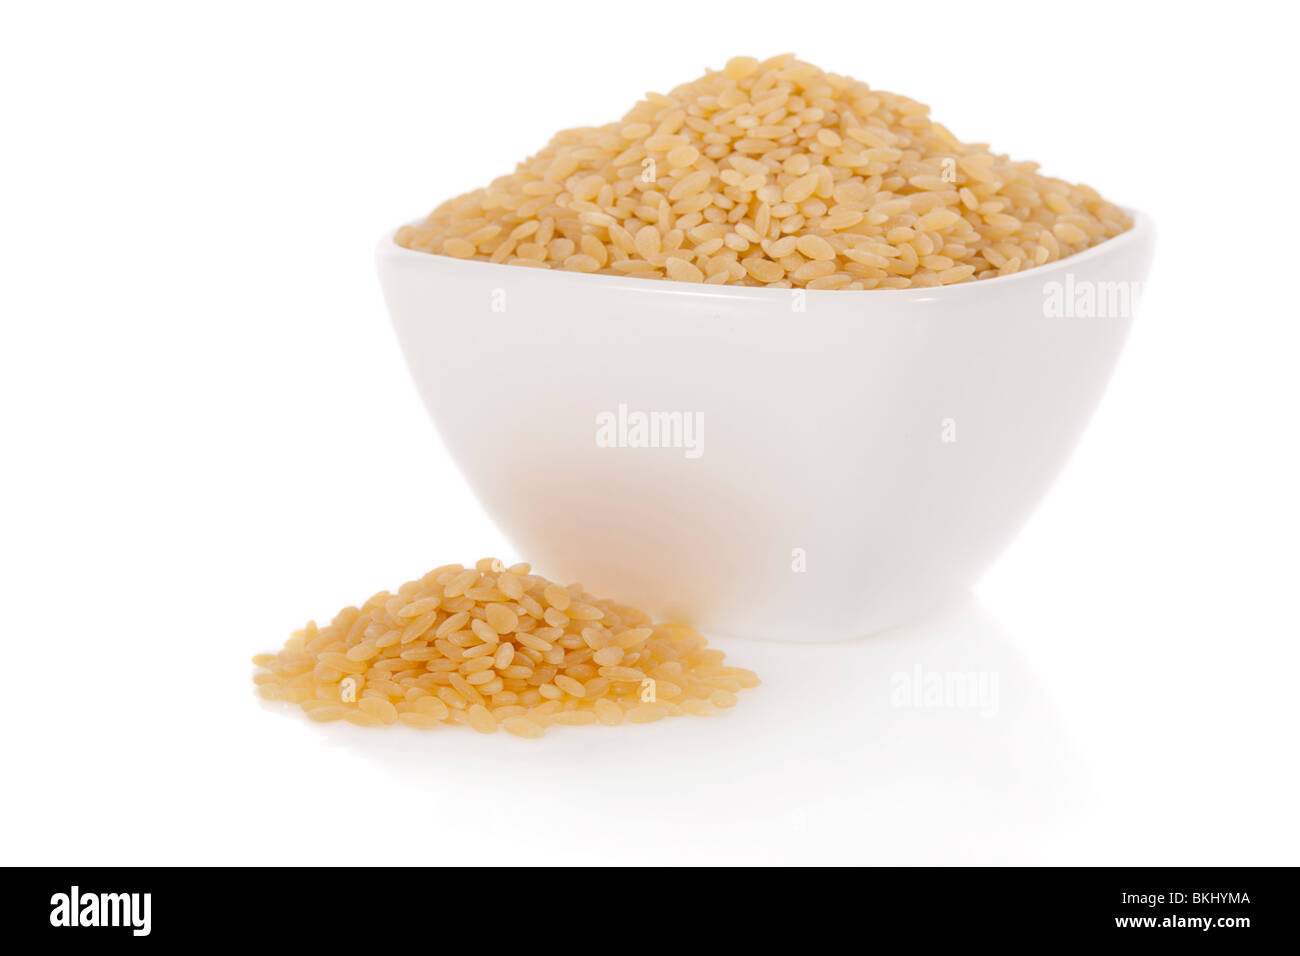 Midolline pasta used for soups in a bowl isolated on a white background - Stock Image